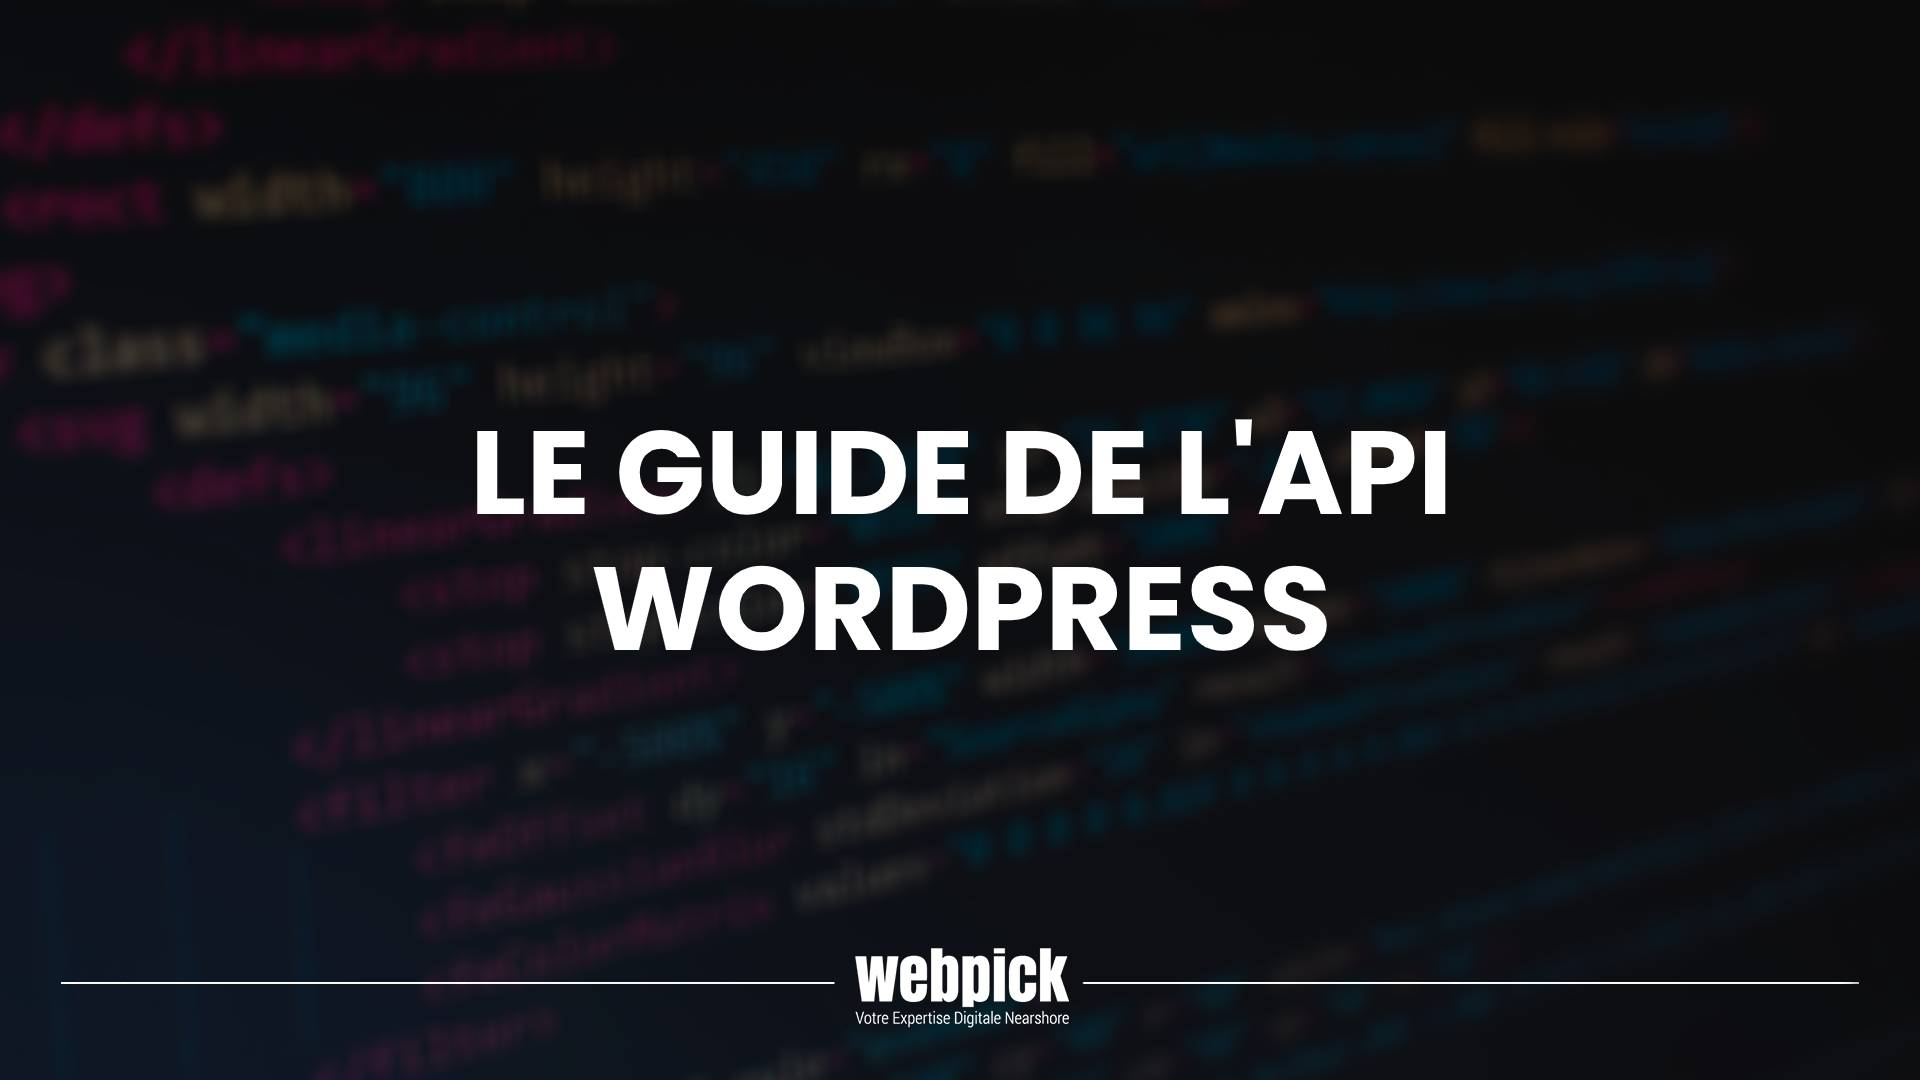 Le Guide de l'API WordPress